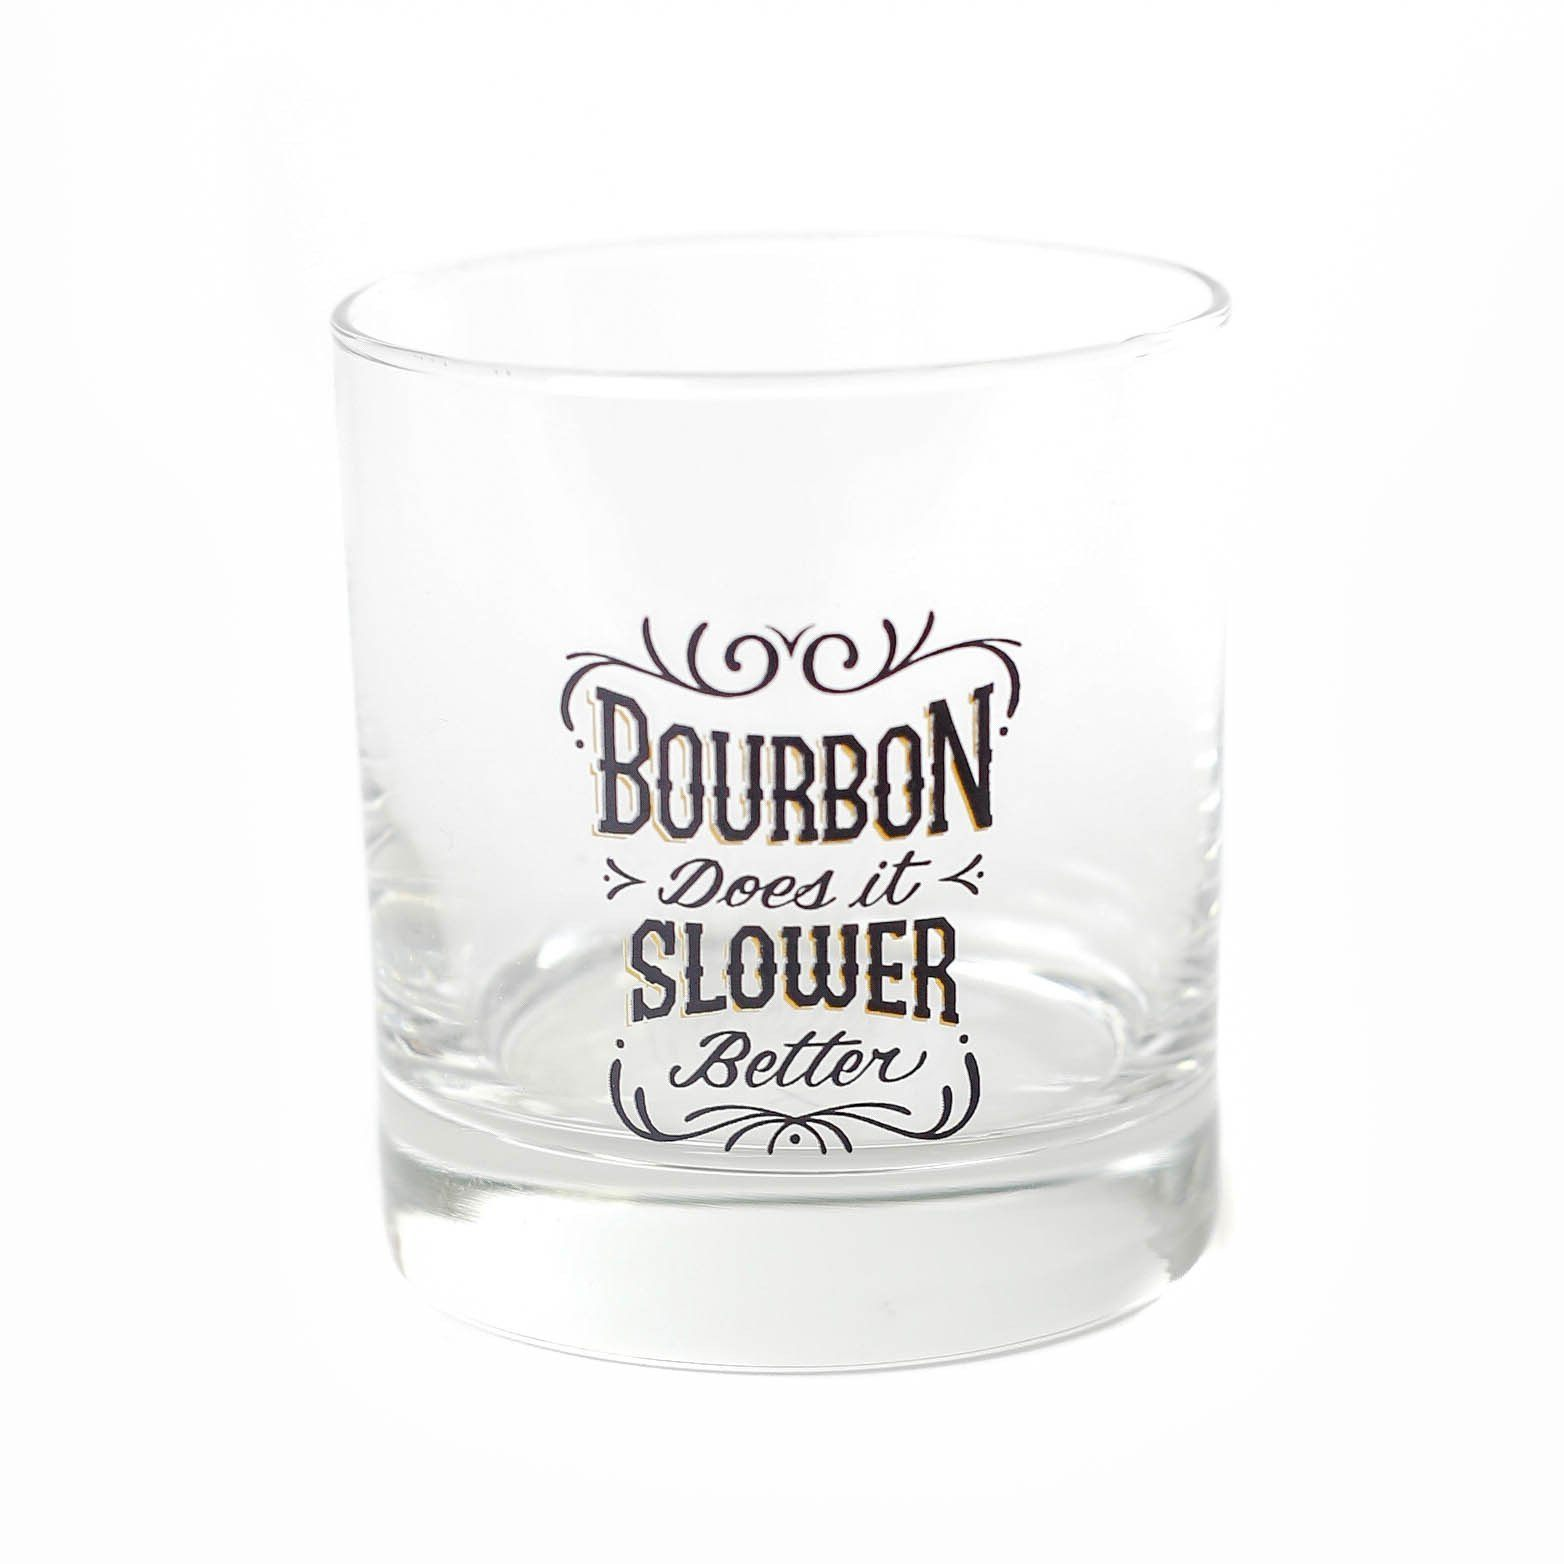 X_Bourbon Does It Slower, Better: Rocks Glass, 9 oz. - Bourbon Outfitter